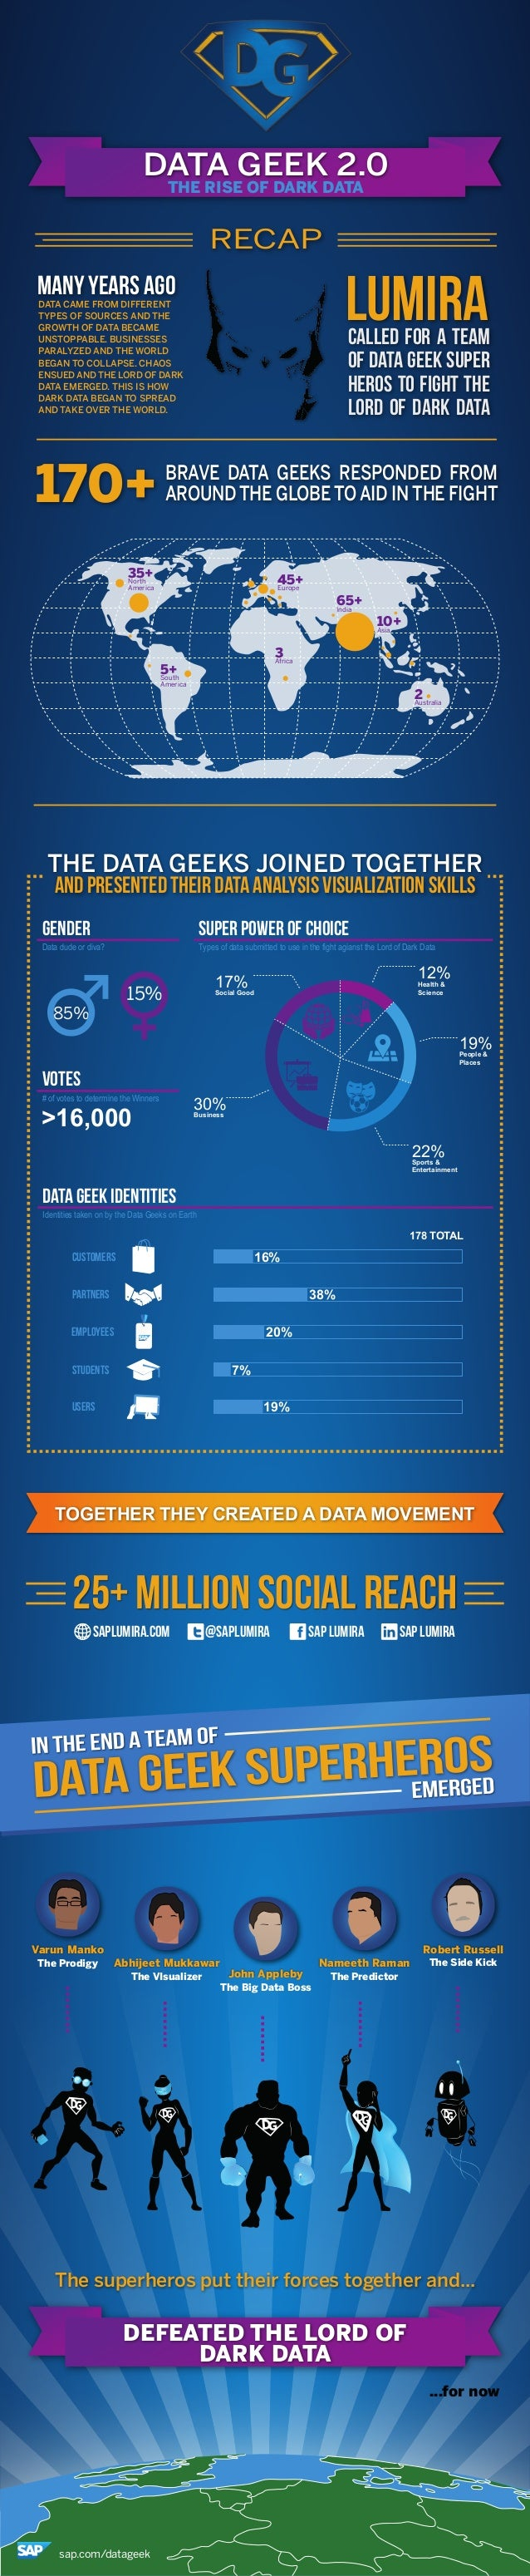 DATA GEEK 2.0 THE RISE OF DARK DATA  RECAP  LUMIRA  MANY YEARS AGO  DATA CAME FROM DIFFERENT TYPES OF SOURCES AND THE GROW...